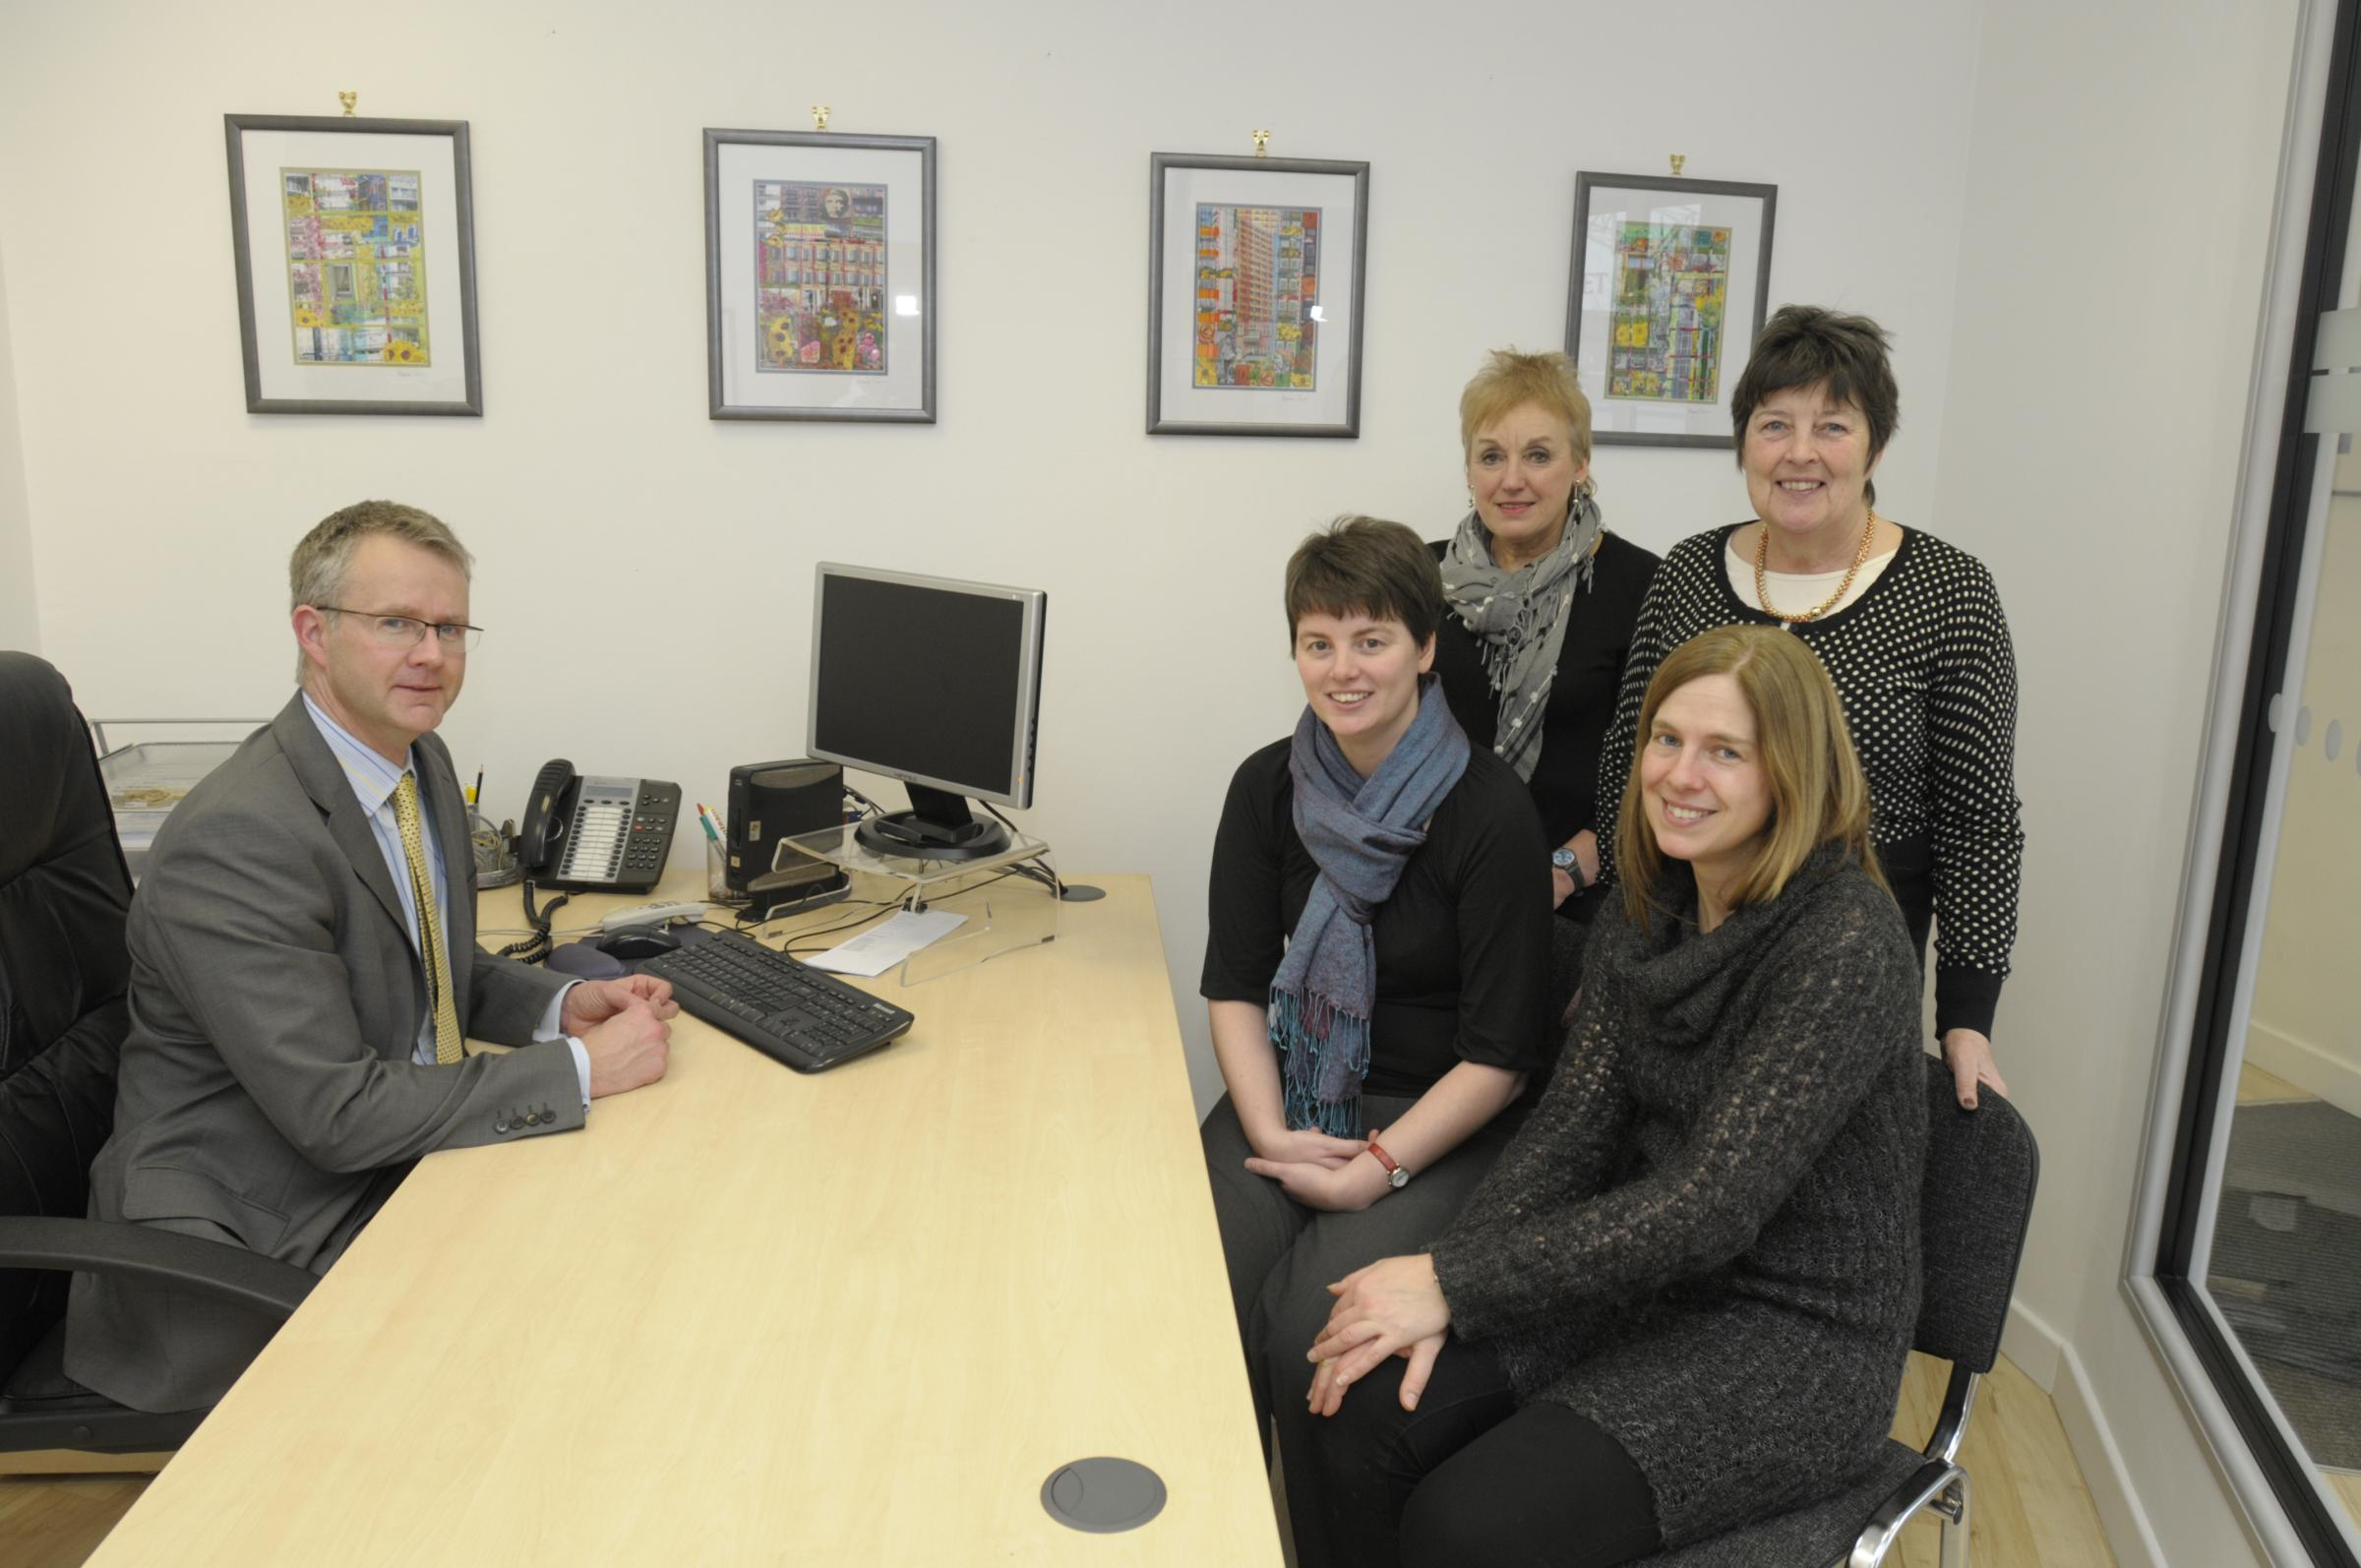 Artists exhibit their work at Runcorn solicitor's office